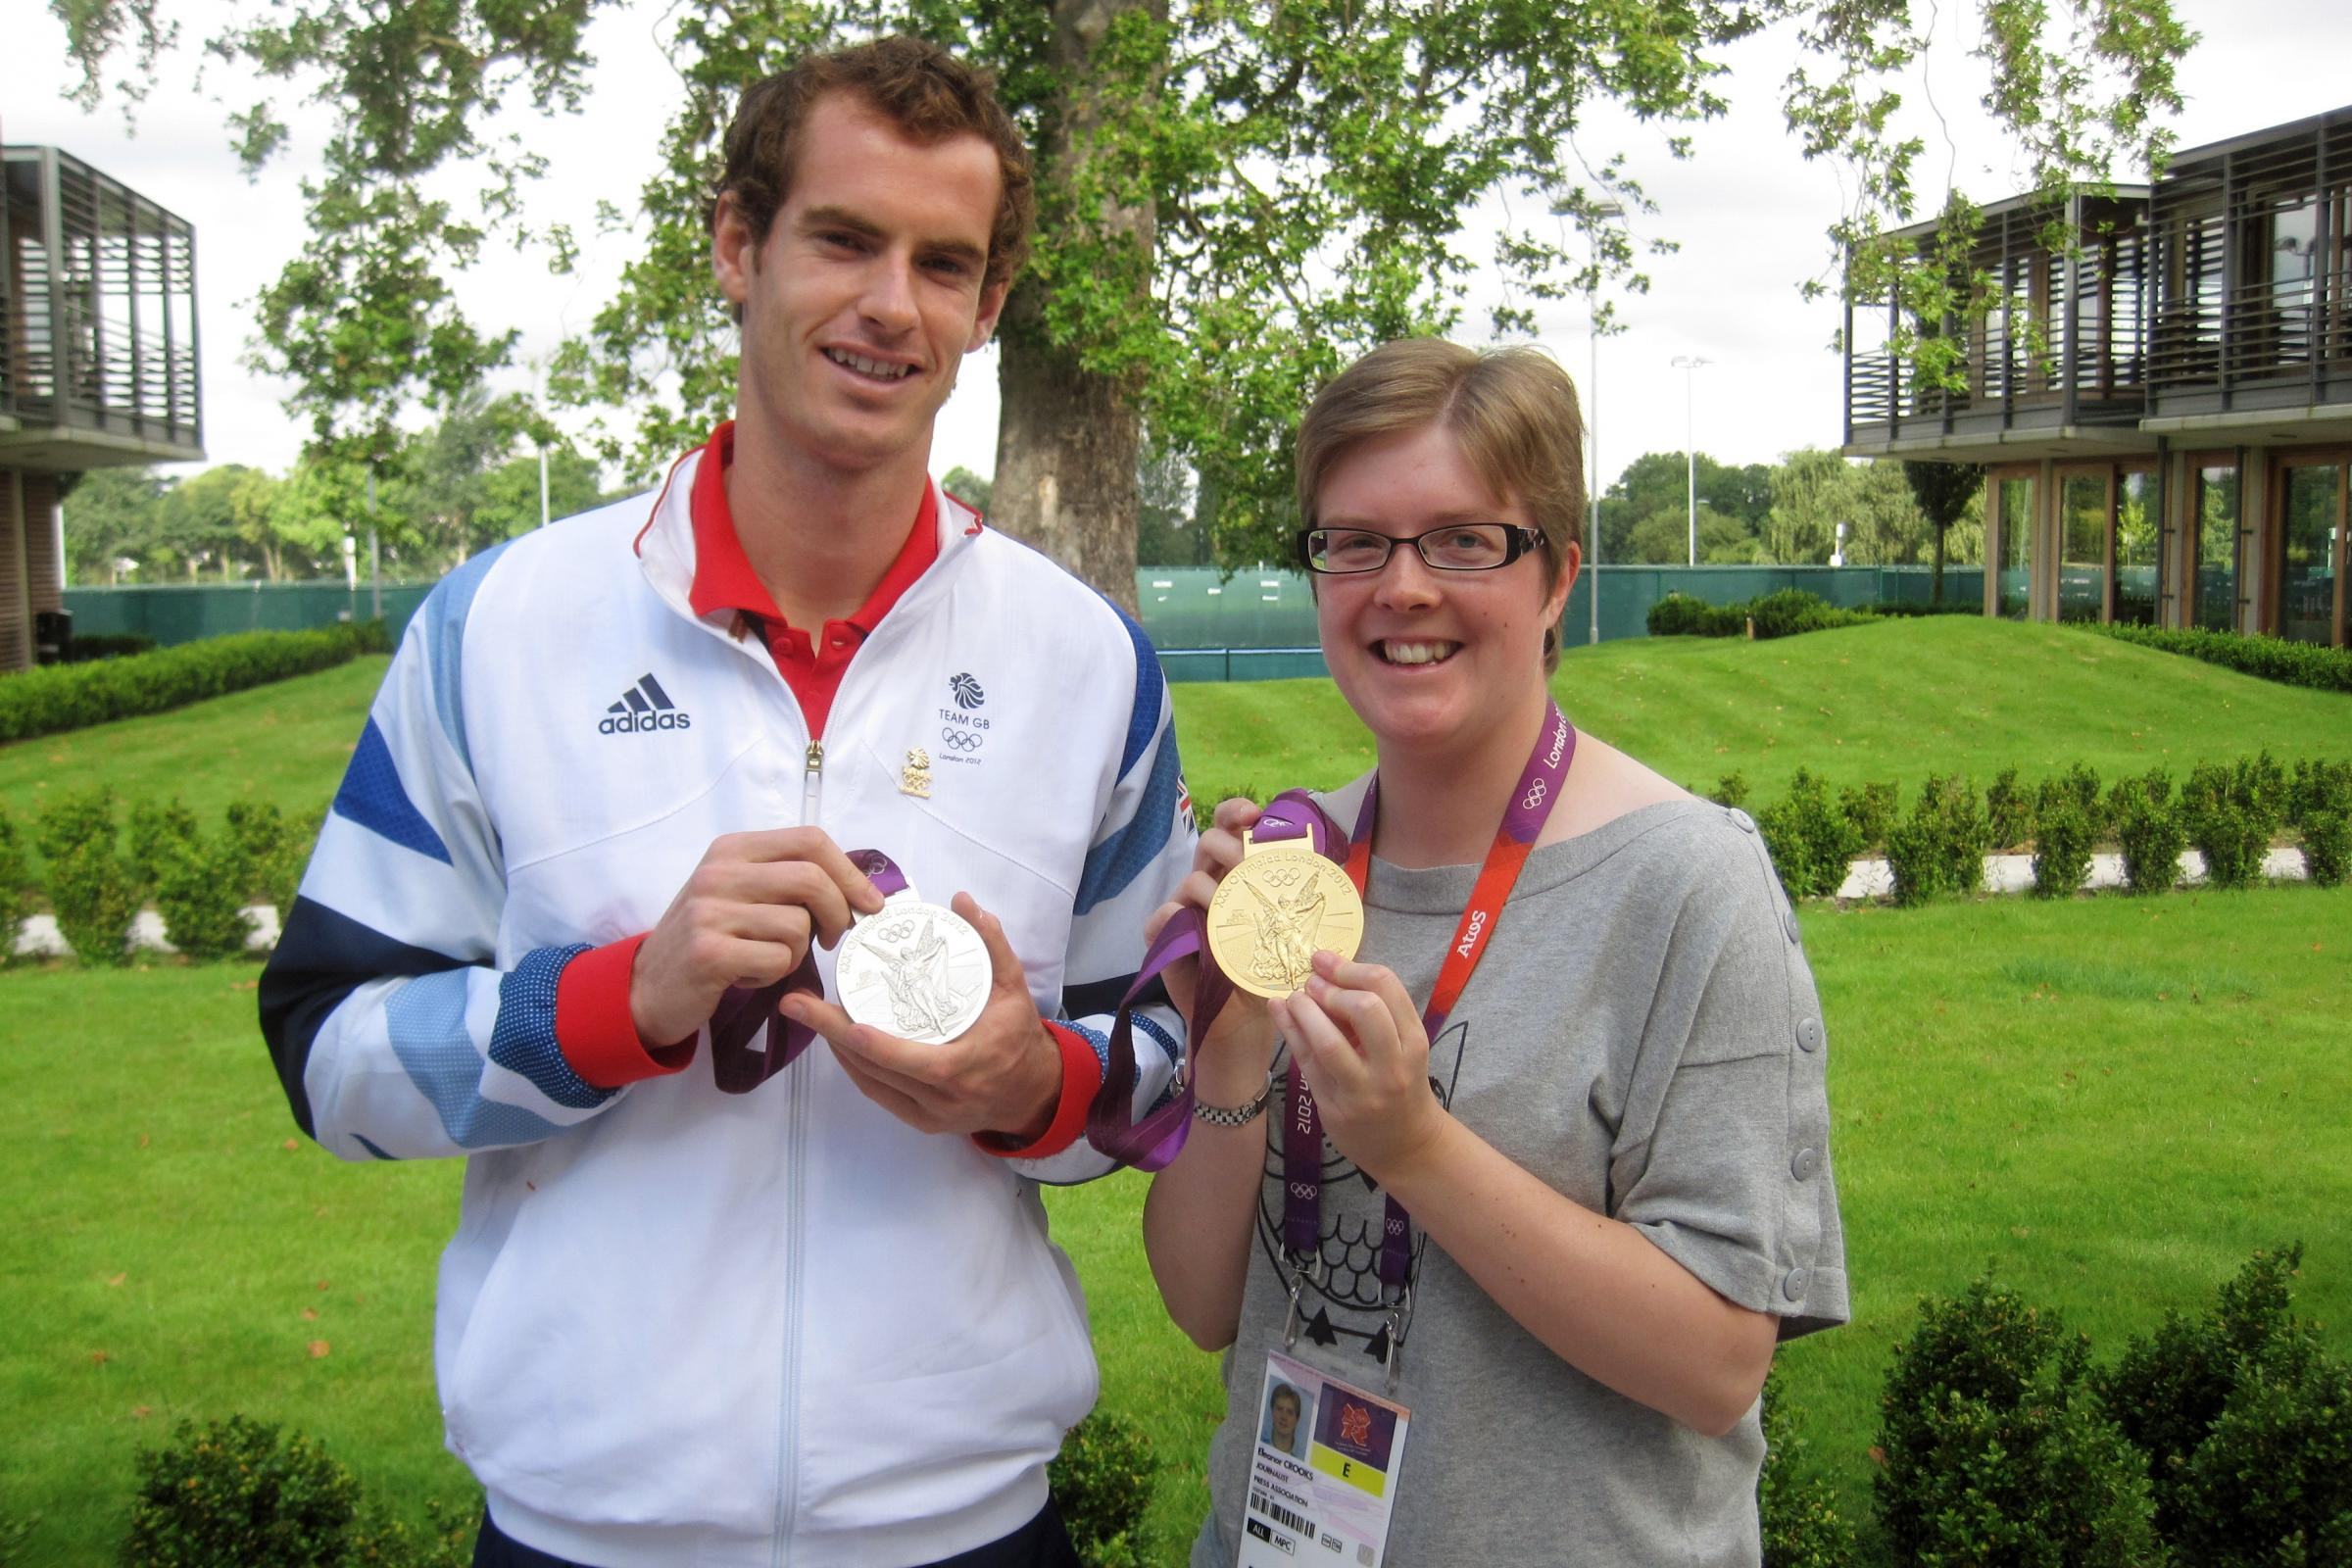 Andy Murray poses with his gold and silver medals from the London 2012 Olympics alongside Press Association journalist Eleanor Crooks